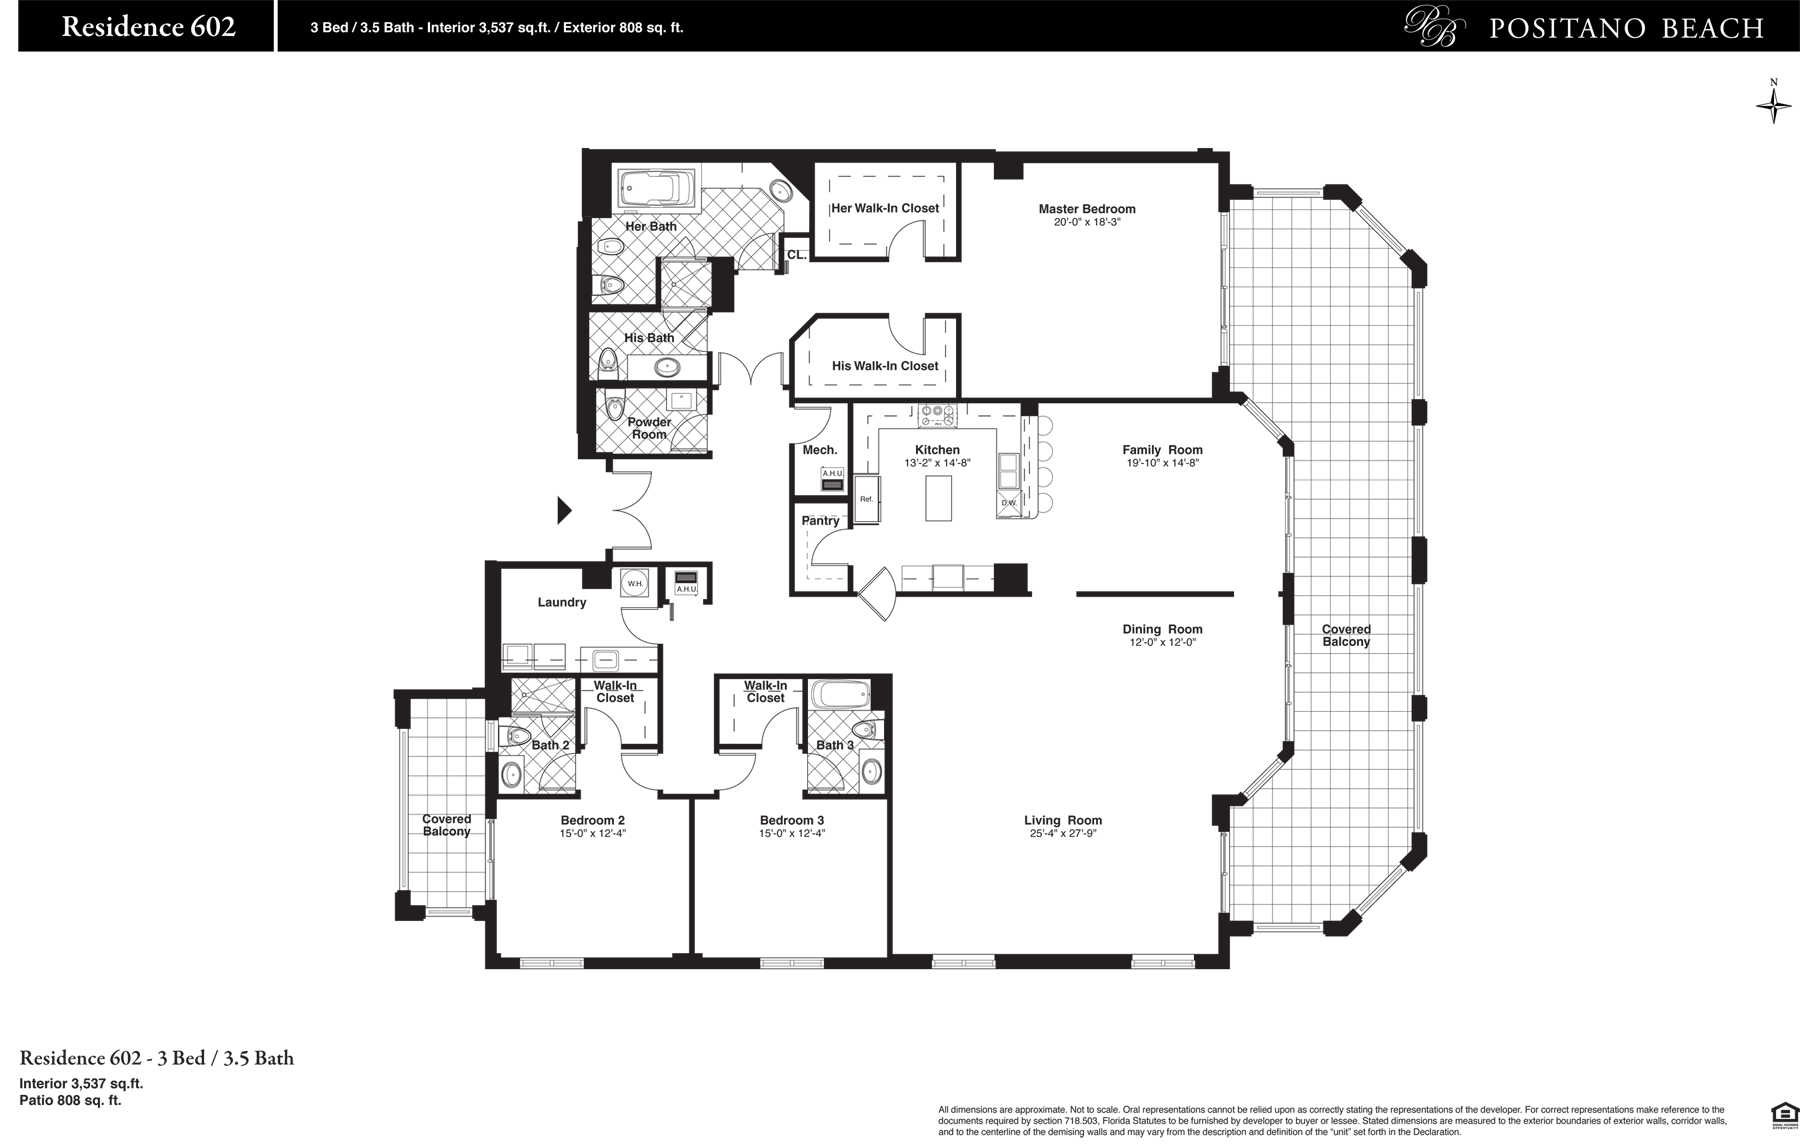 Positano Beach - Floorplan 12